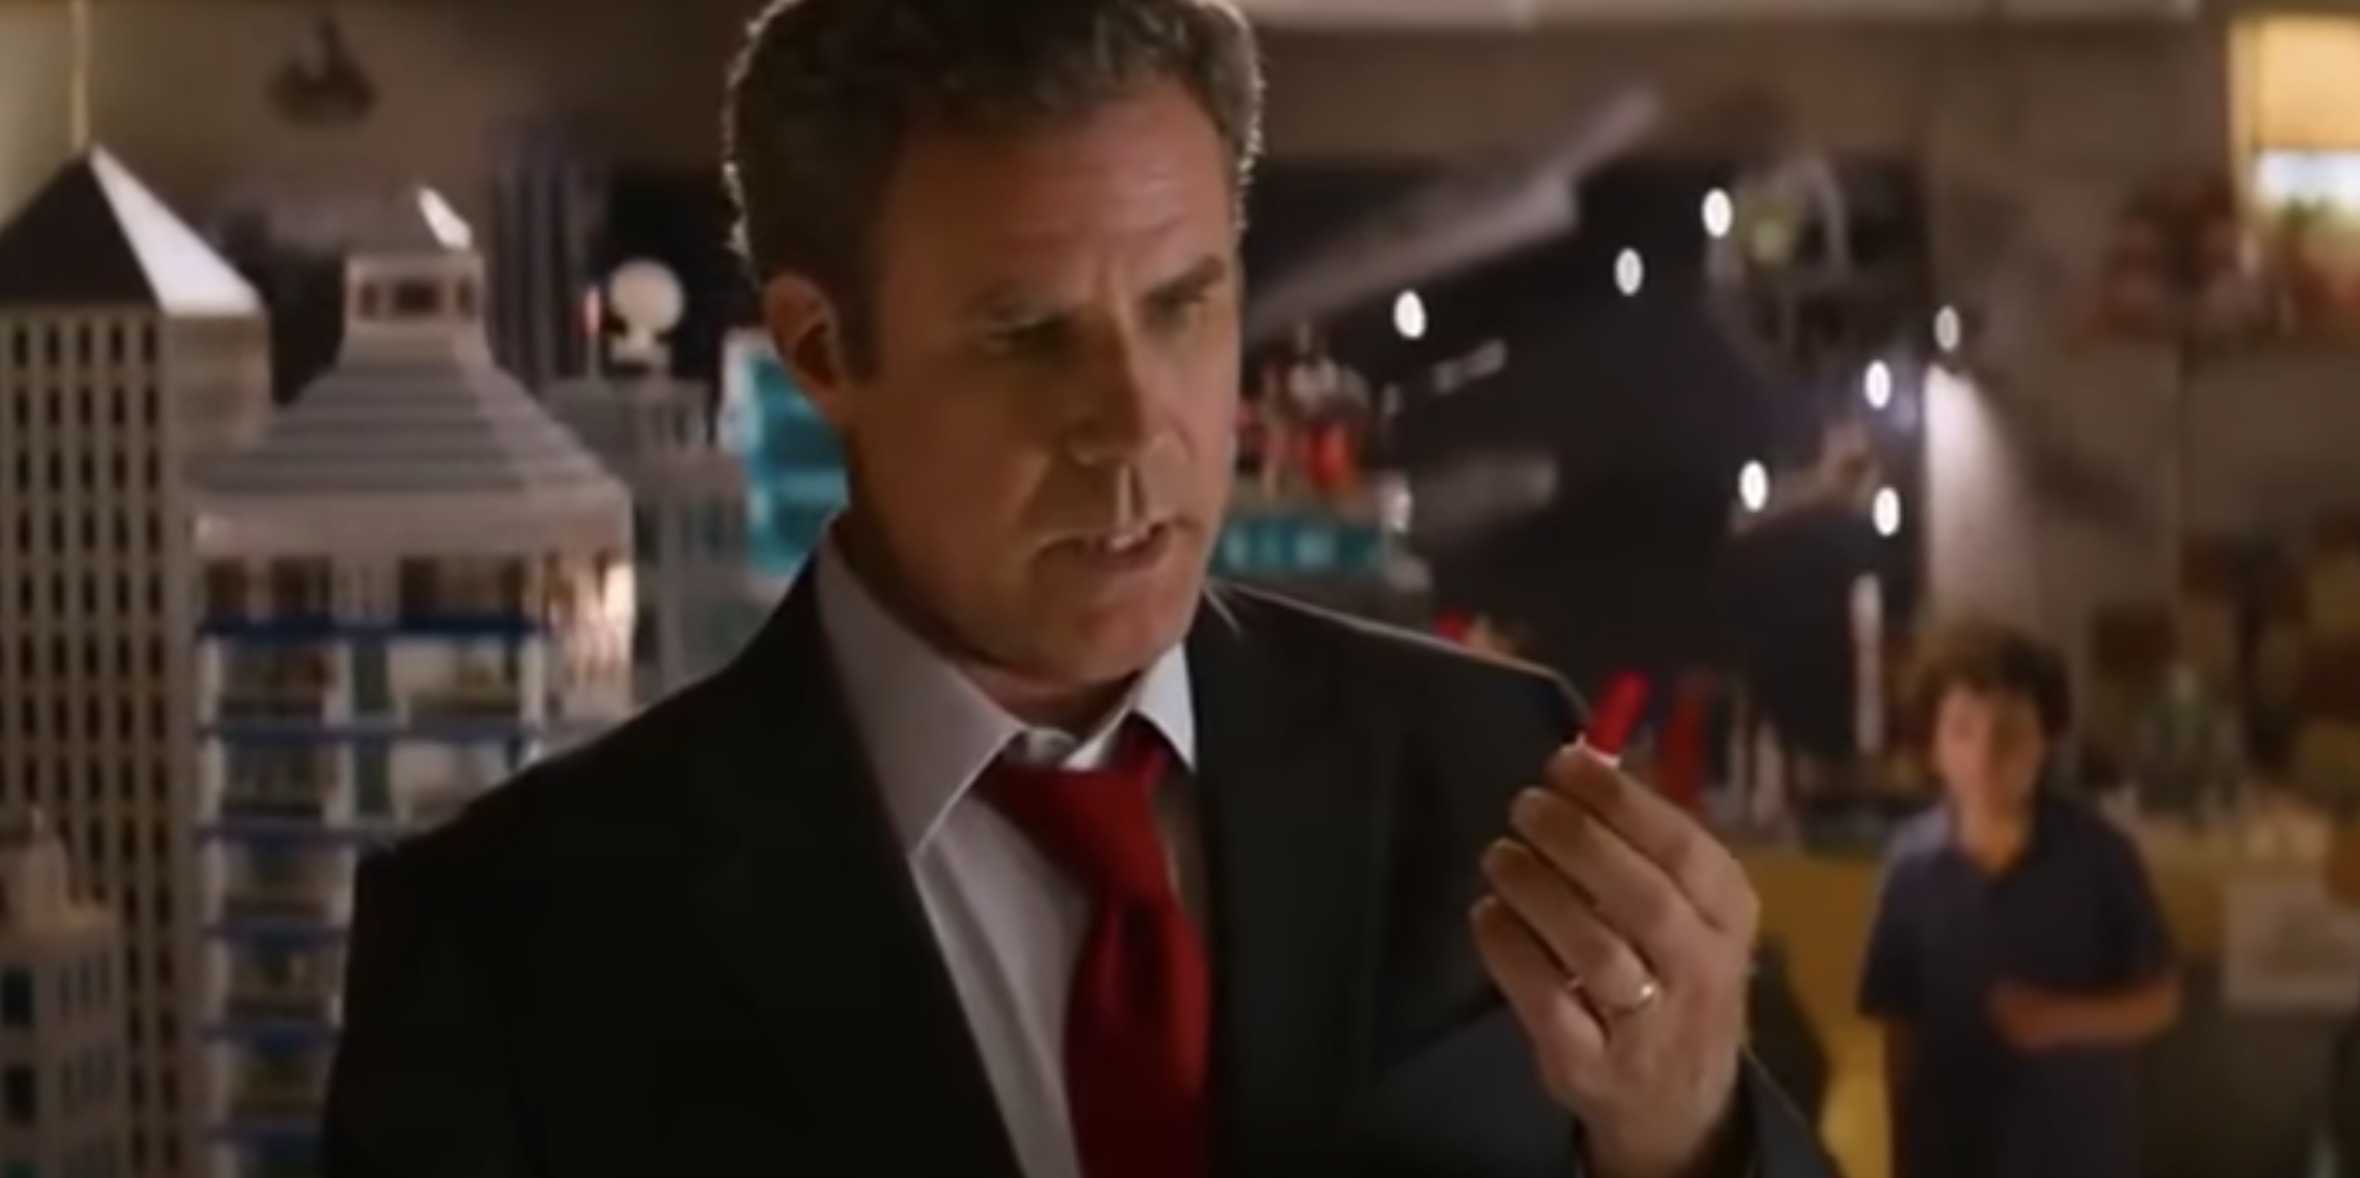 Will Ferrell as the dad, looking at a lego